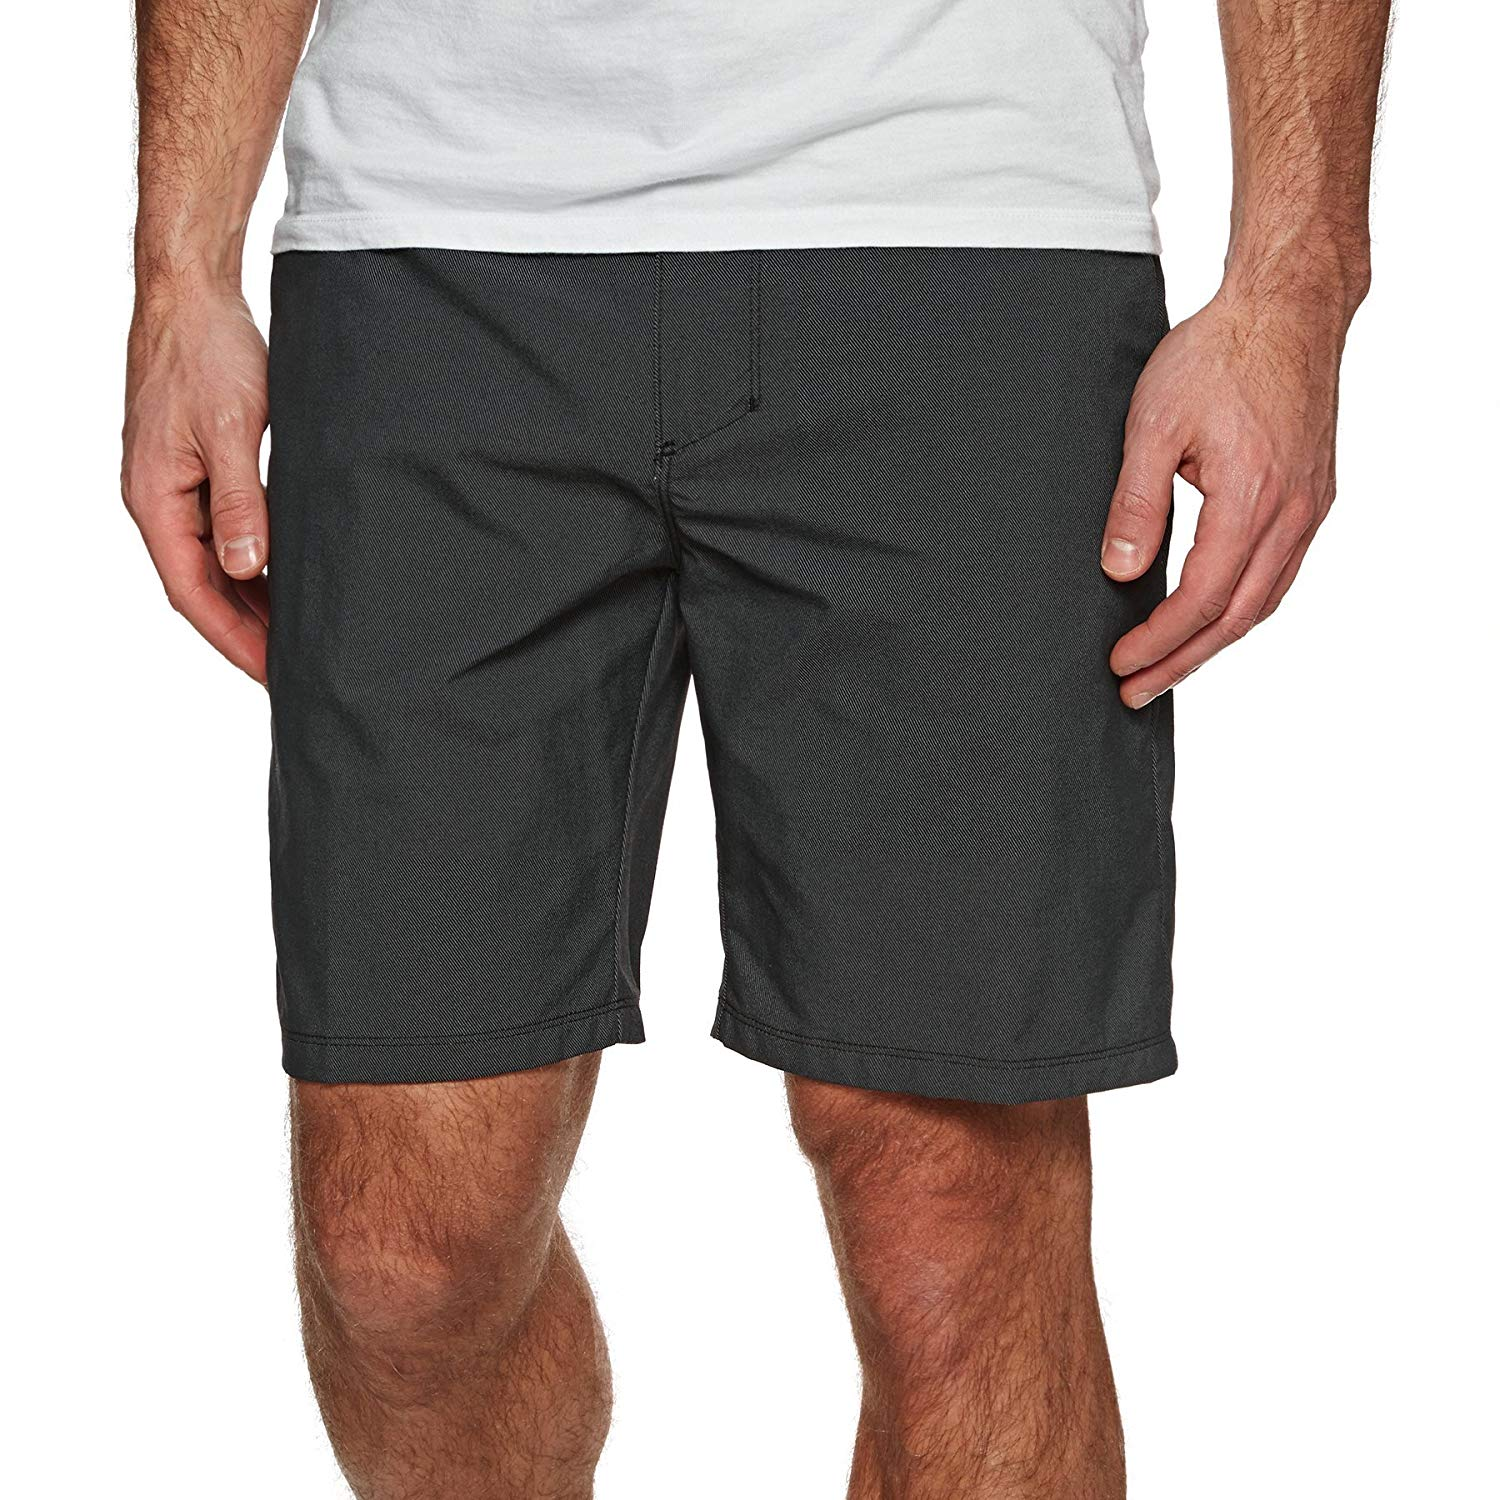 9a8729aff9 Cheap Hurley Shorts, find Hurley Shorts deals on line at Alibaba.com